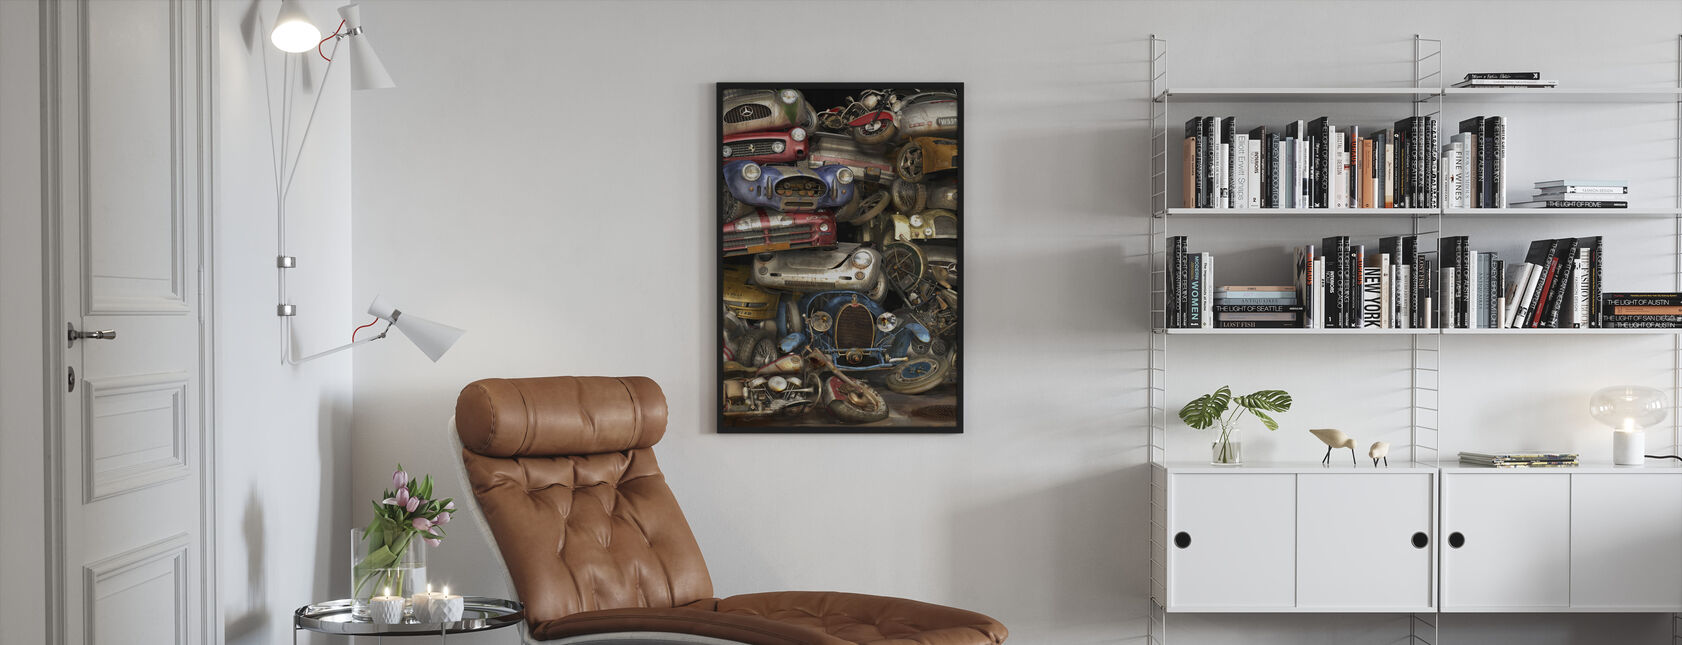 Recycling - Framed print - Living Room